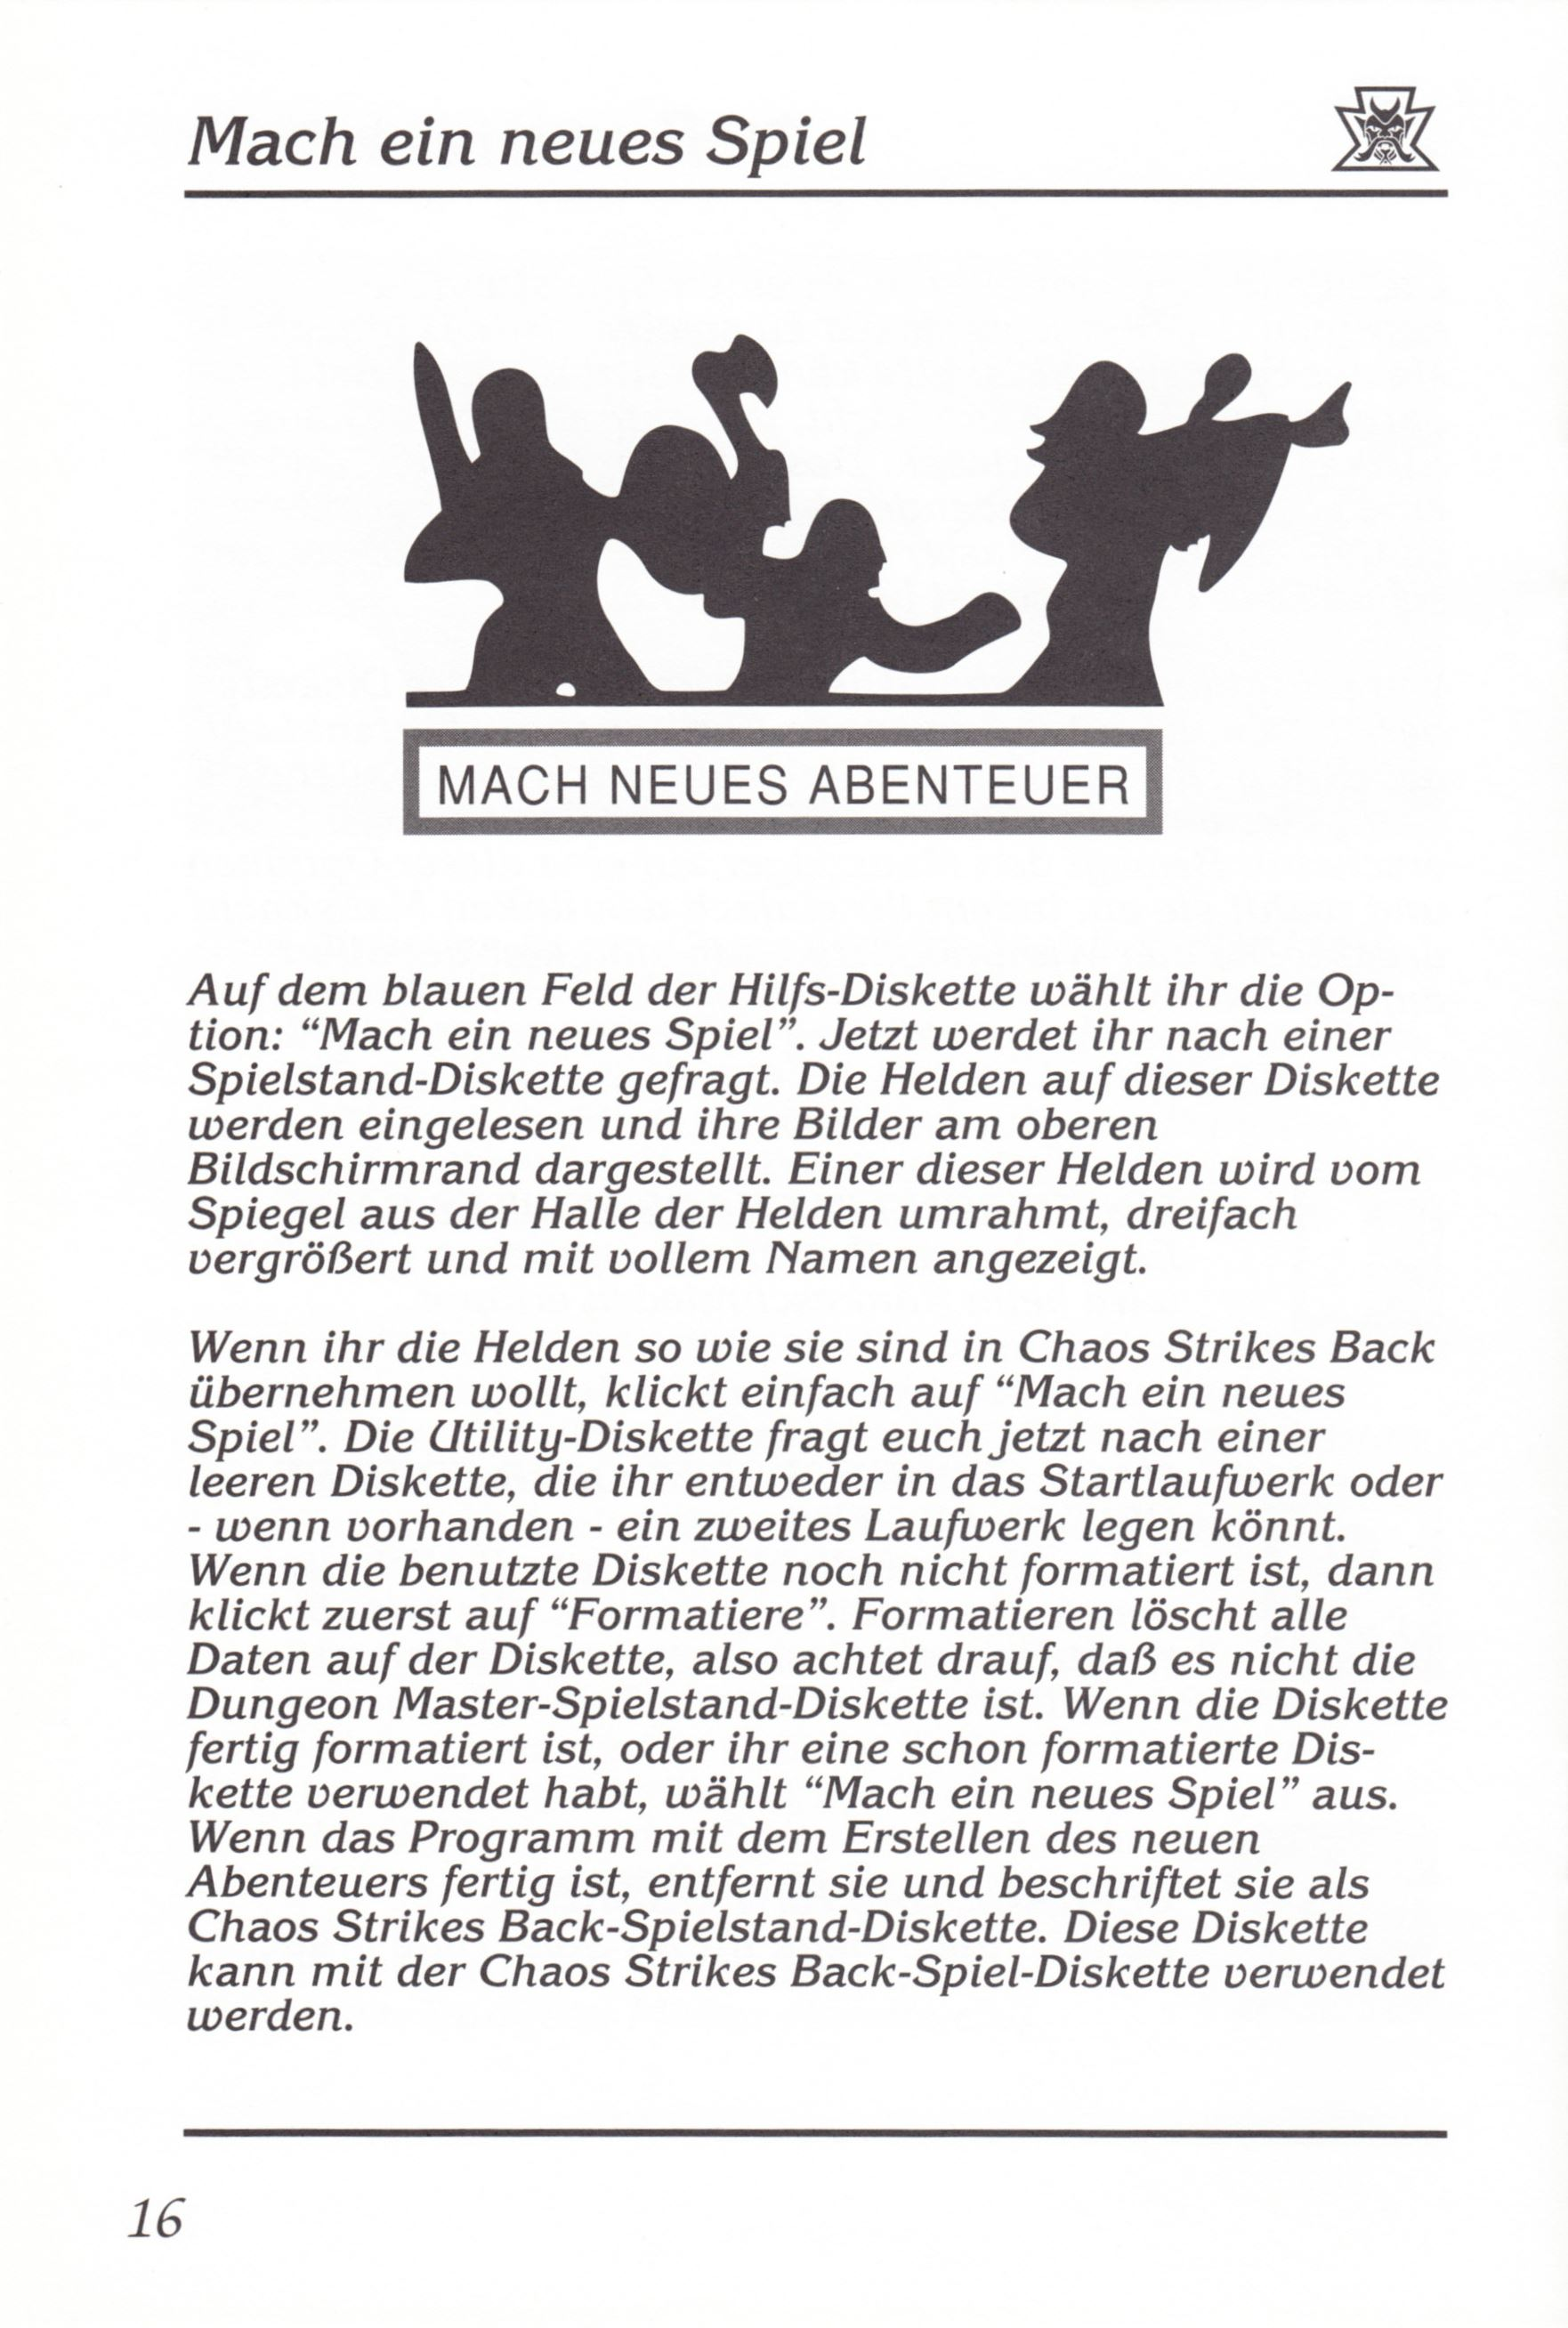 Game - Chaos Strikes Back - DE - Amiga - Manual - Page 018 - Scan